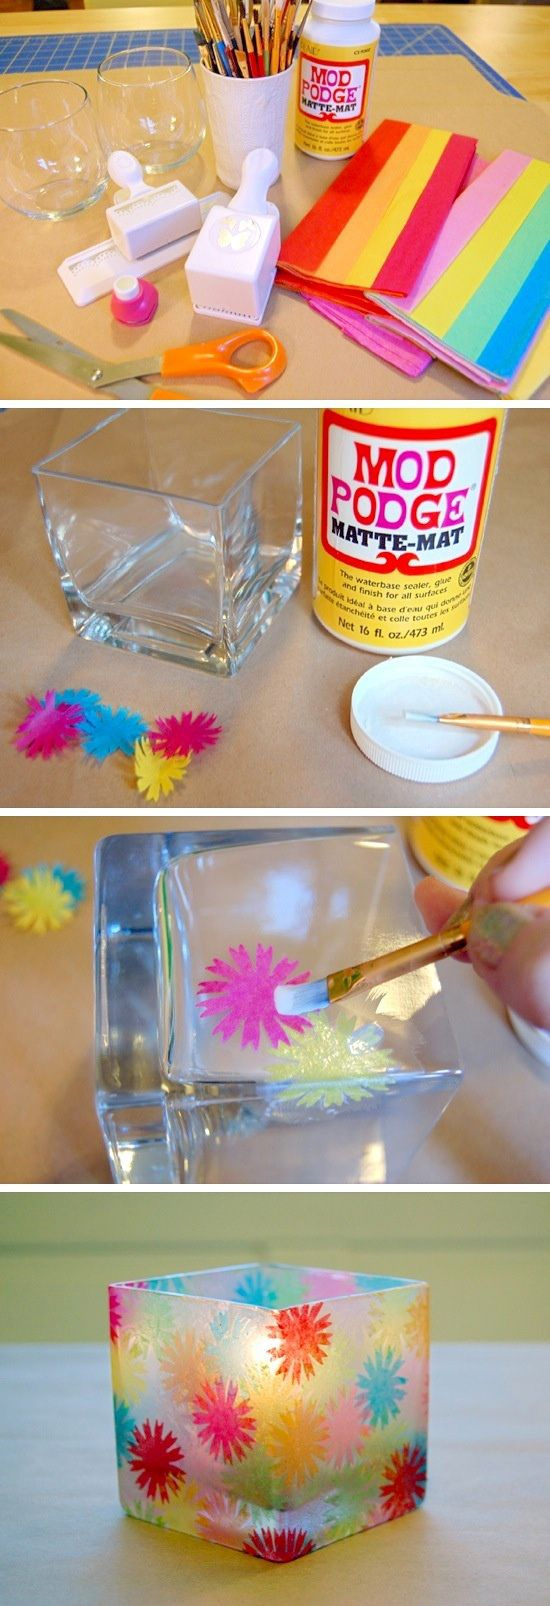 Stained Glass Candle Holders (Tutorial included).. Love the idea, but I would definitely use different colors or a totally different pattern.